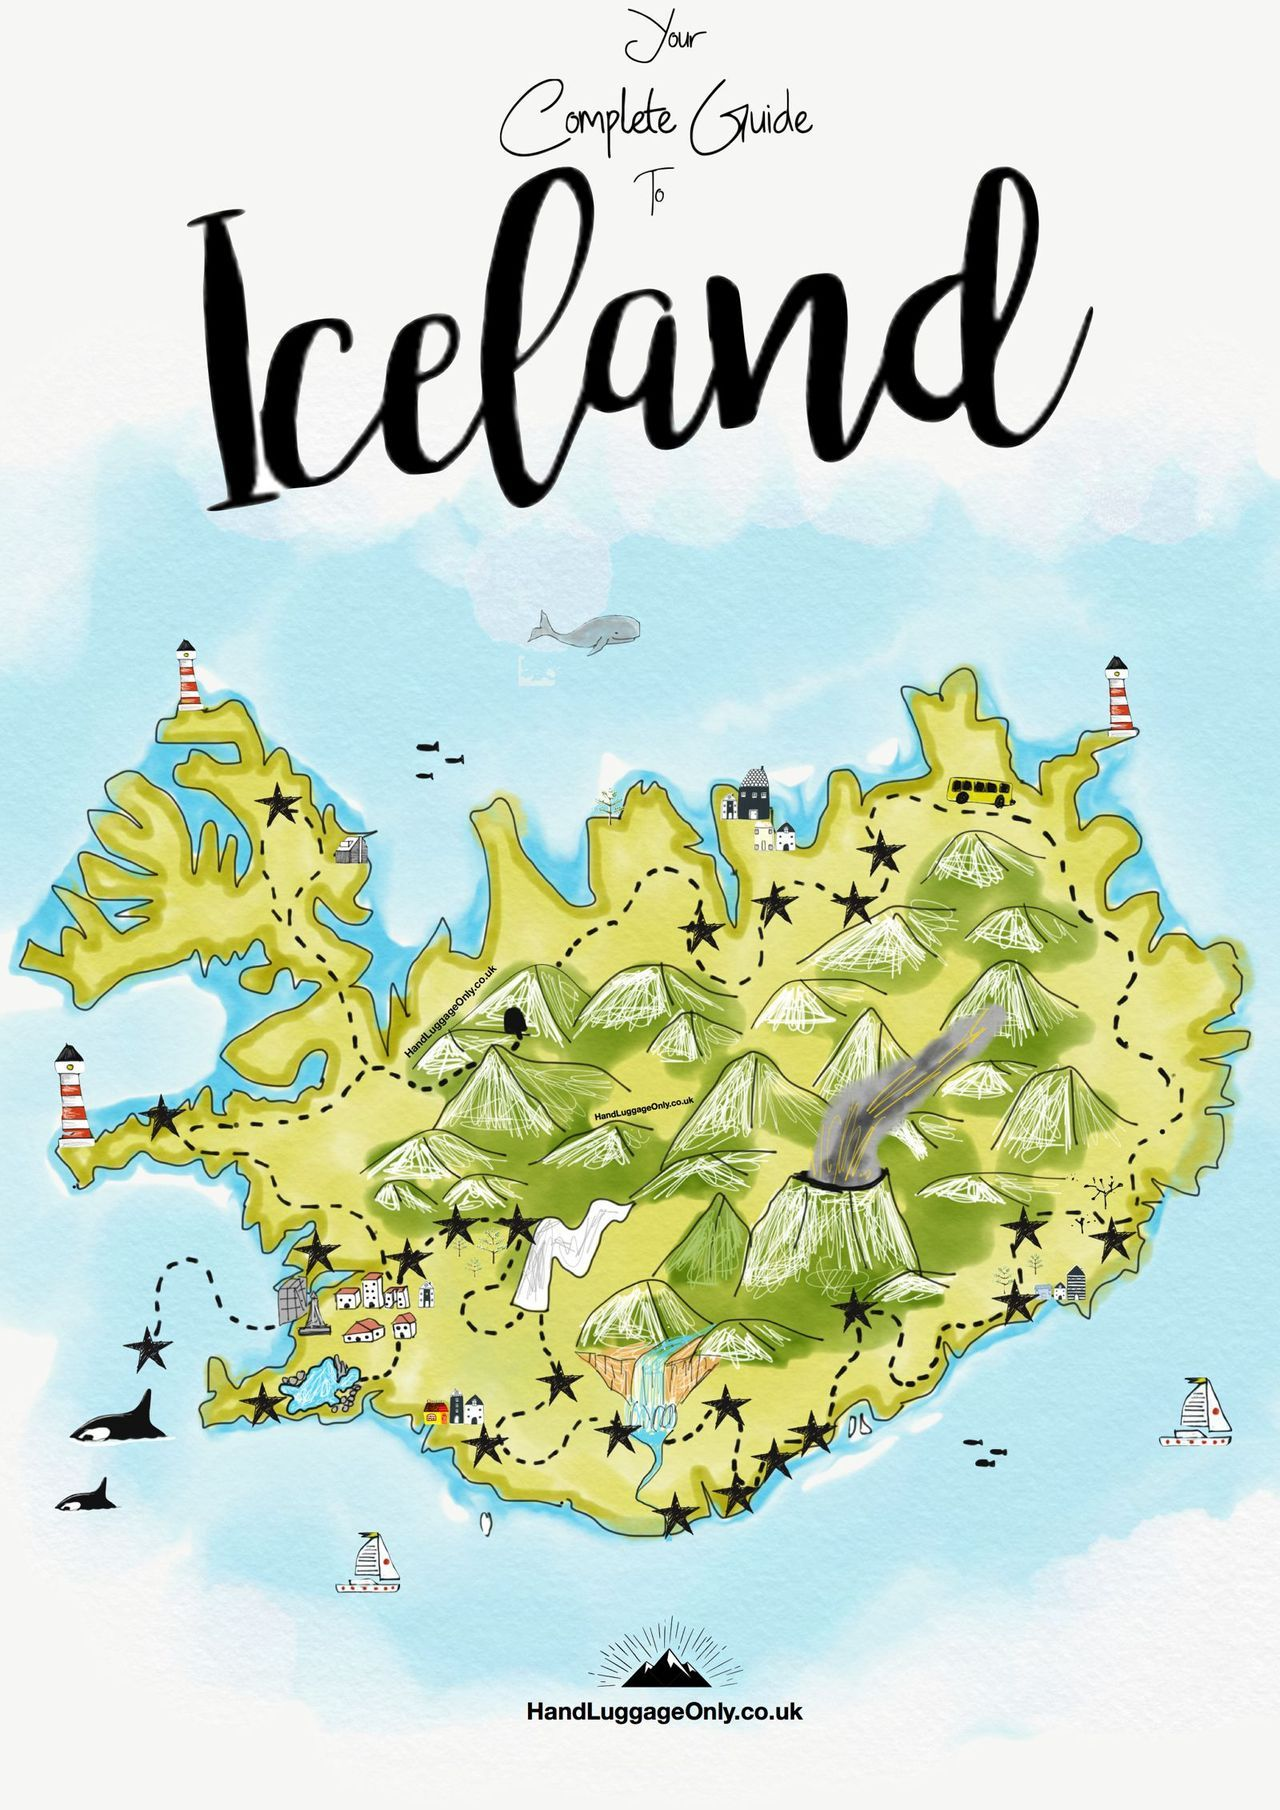 Iceland From Us Travel Map on u.s. travel map, netherlands travel map, iceland information, iceland tours, iceland book, bhutan travel map, iceland vacation, iran travel map, iceland history, colombia travel map, brazil travel map, iceland photography, iceland time, dominican republic travel map, wales travel map, iceland trips, iceland points of interest maps, seychelles travel map, honduras travel map, iceland in 10 days itinerary,